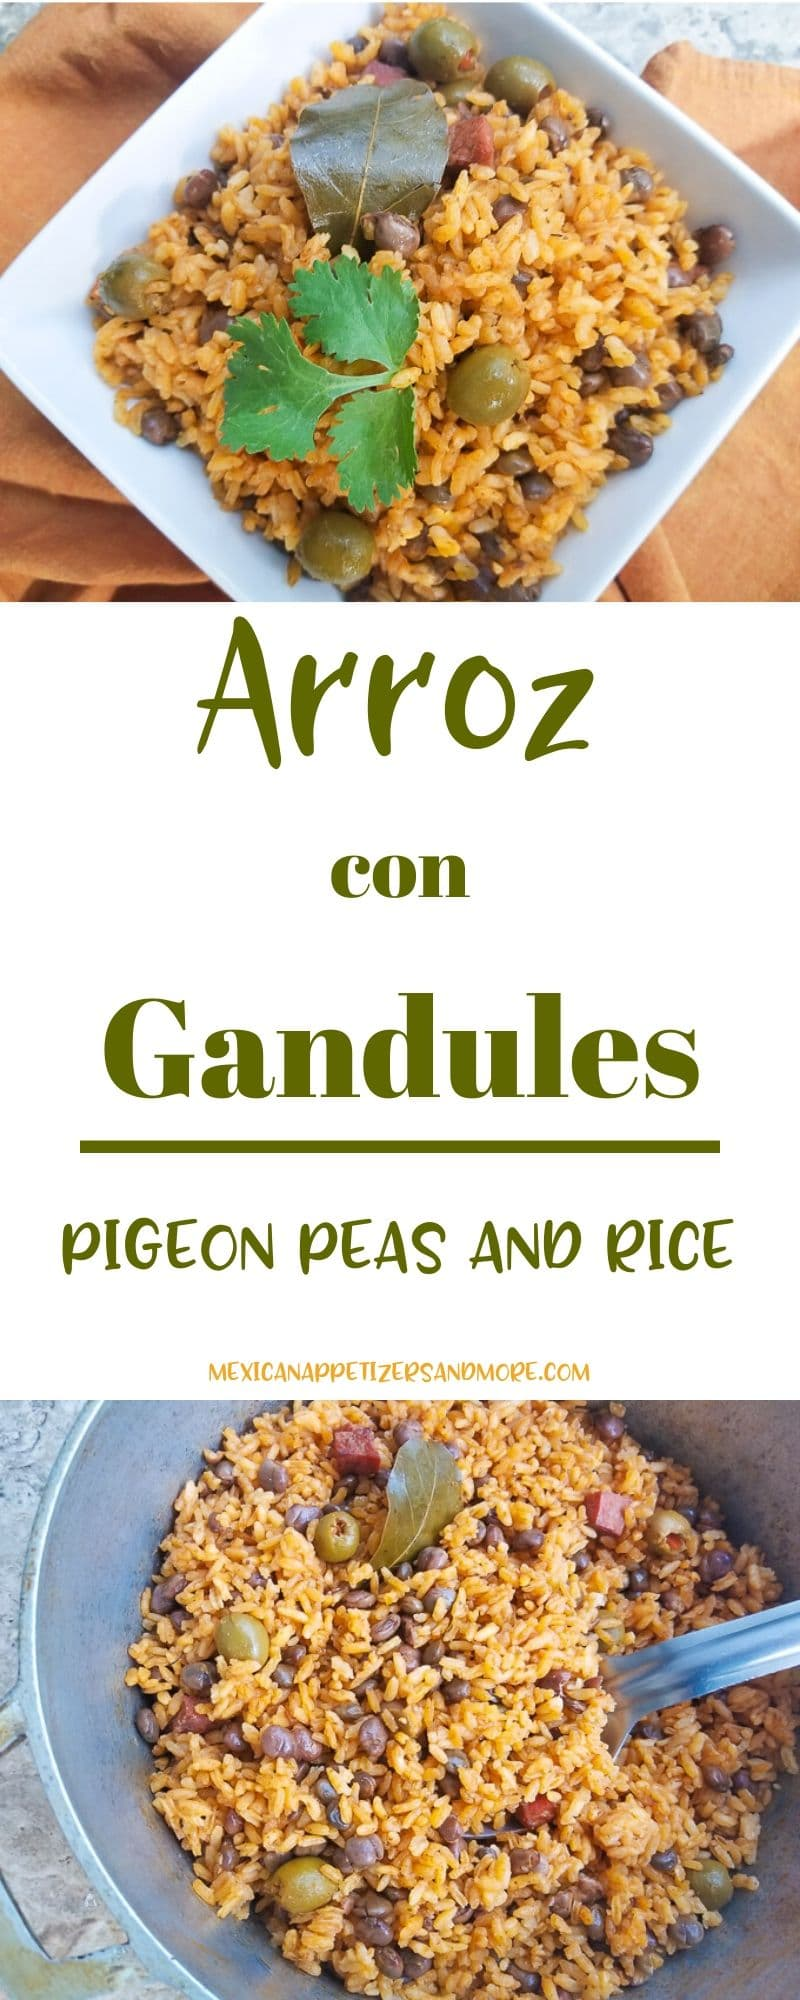 Arroz con Gandules (Pigeon Peas and Rice)